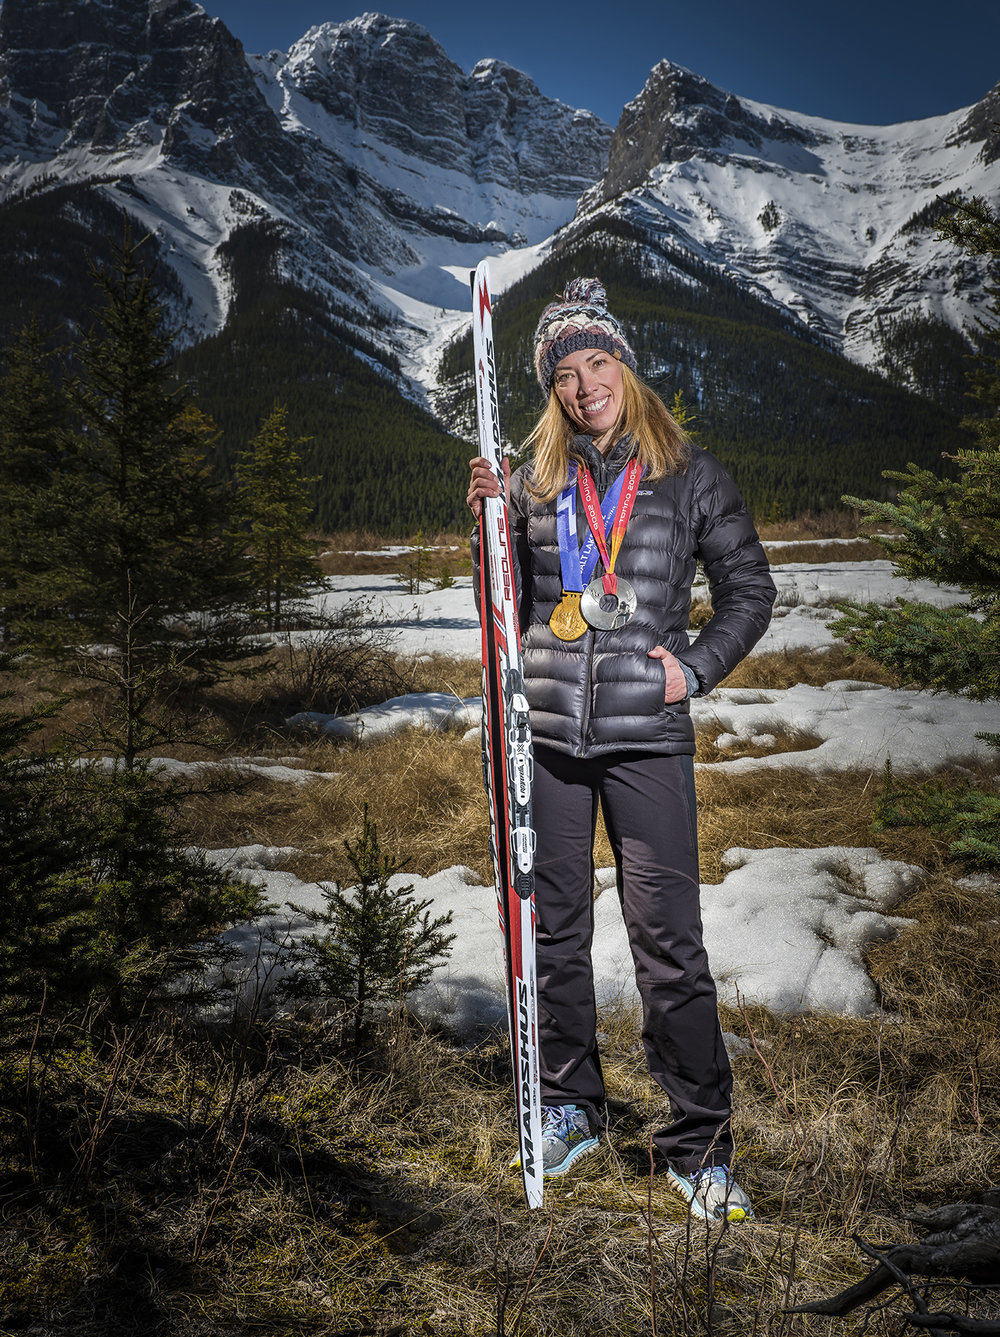 Today, Beckie Scott is Programme Director for Ski Fit North Alberta, the health and wellness outreach programme for indigenous children and youth. Beckie is also Chair of the World Anti-Doping Agency's Athlete Committee.